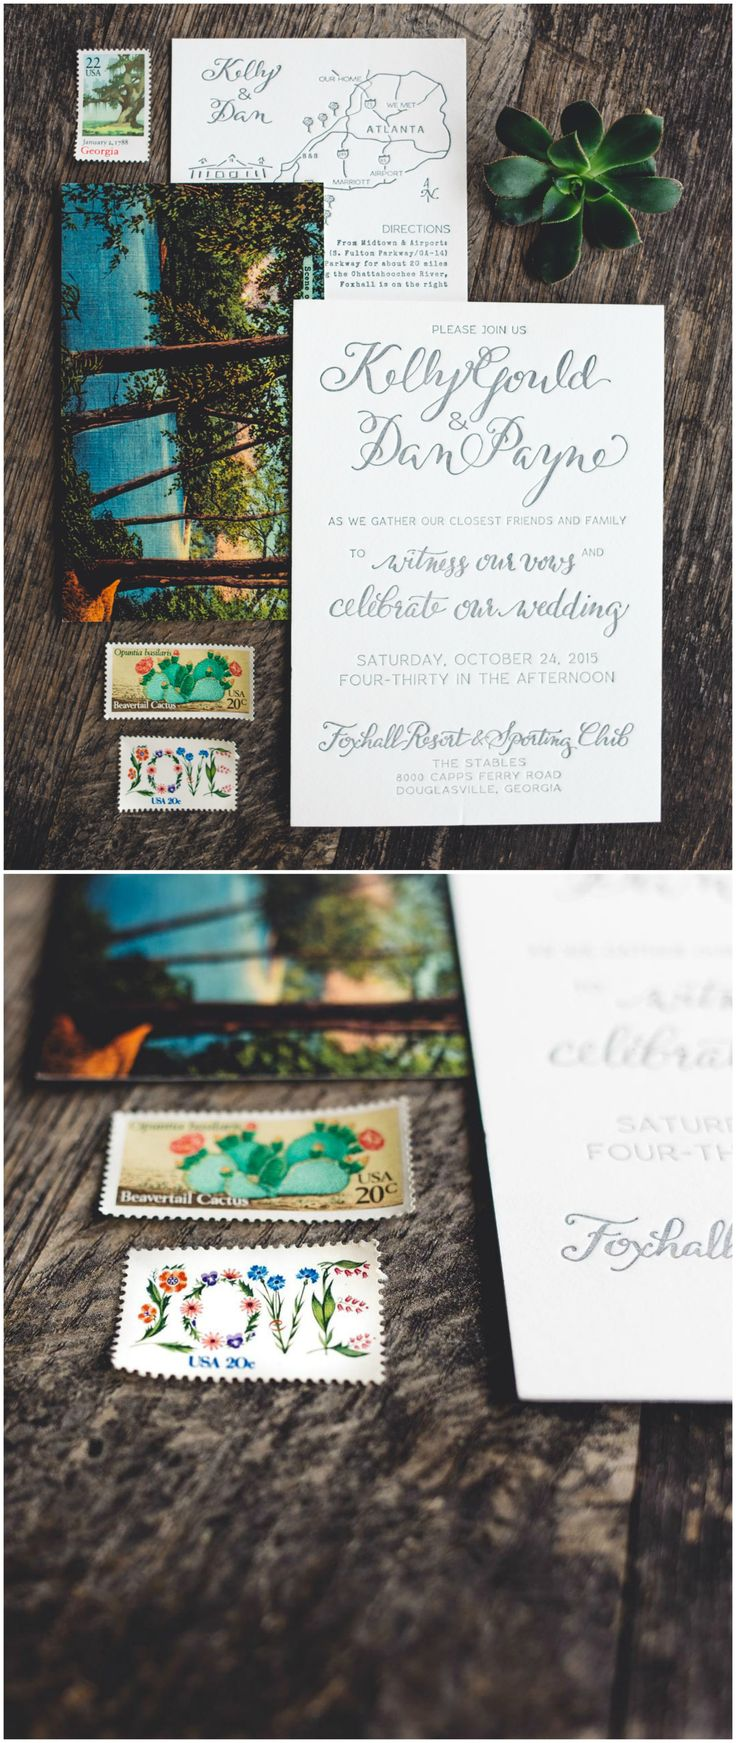 456 Best Wedding Invitations Images On Pinterest Bridal